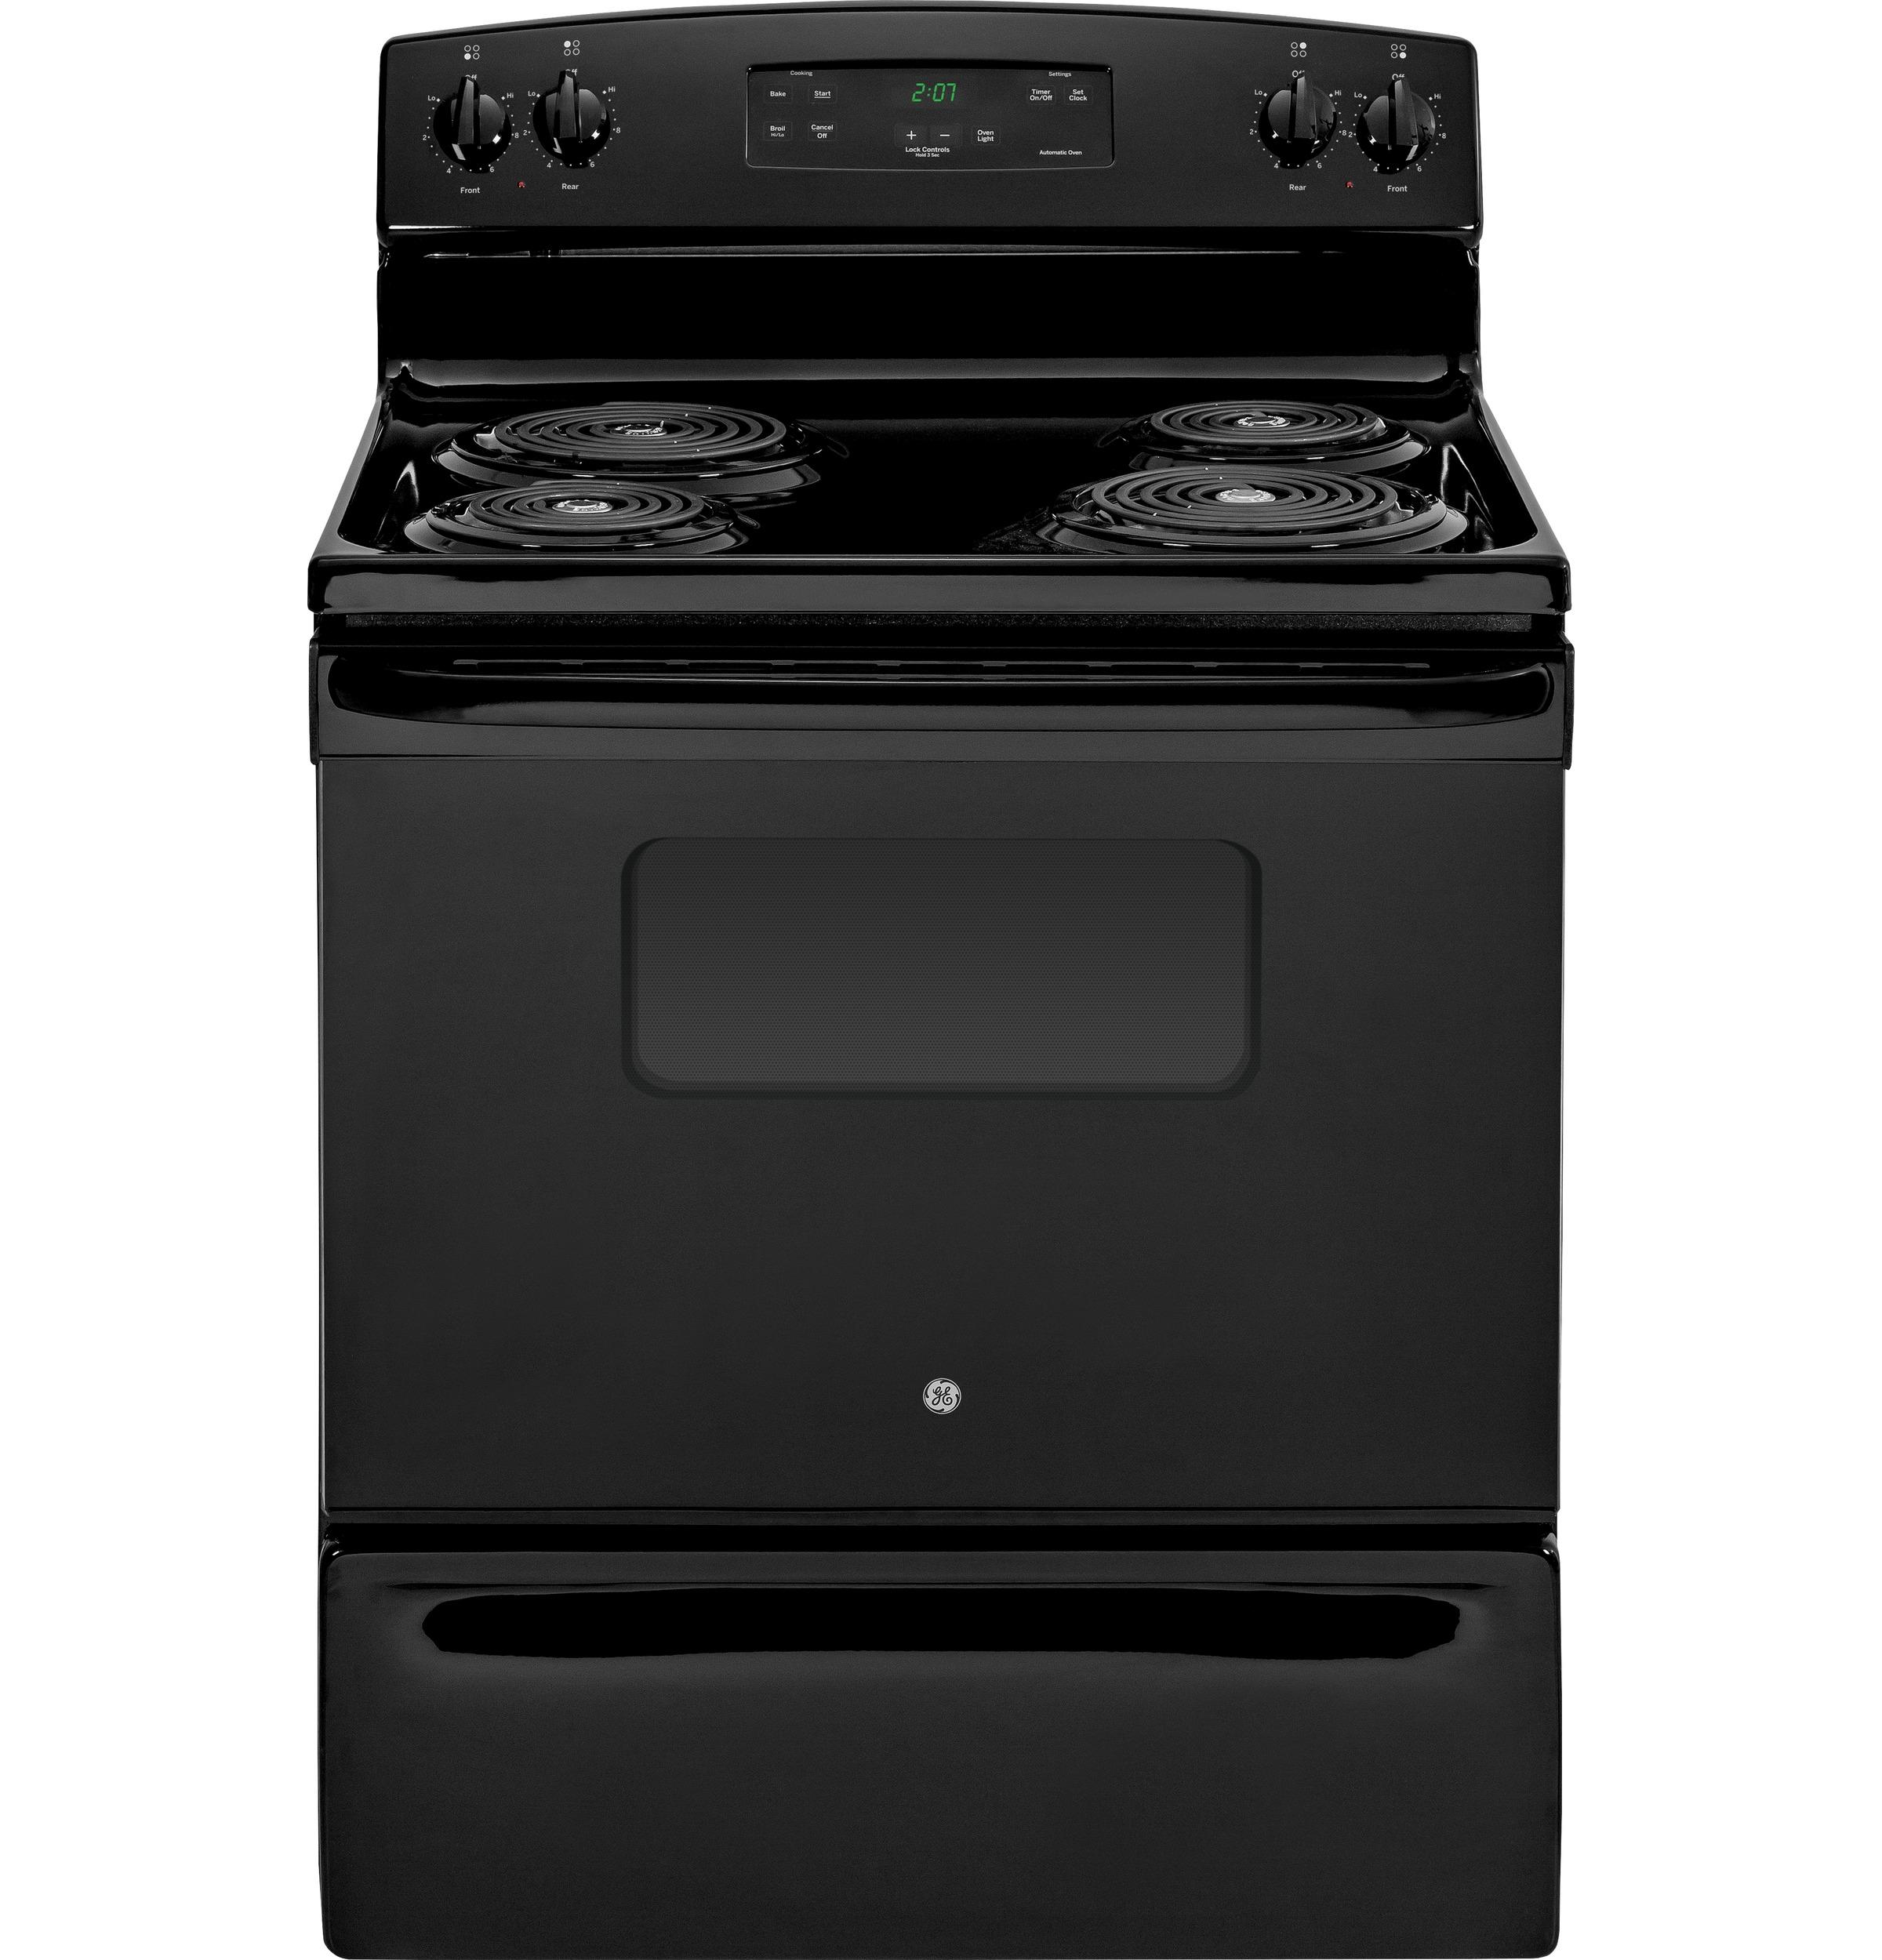 Ge Appliance Warranty >> General Electric JBS27DFWW 30 Inch Freestanding Electric Range with 4 Coil Elements, 5.0 cu. ft ...